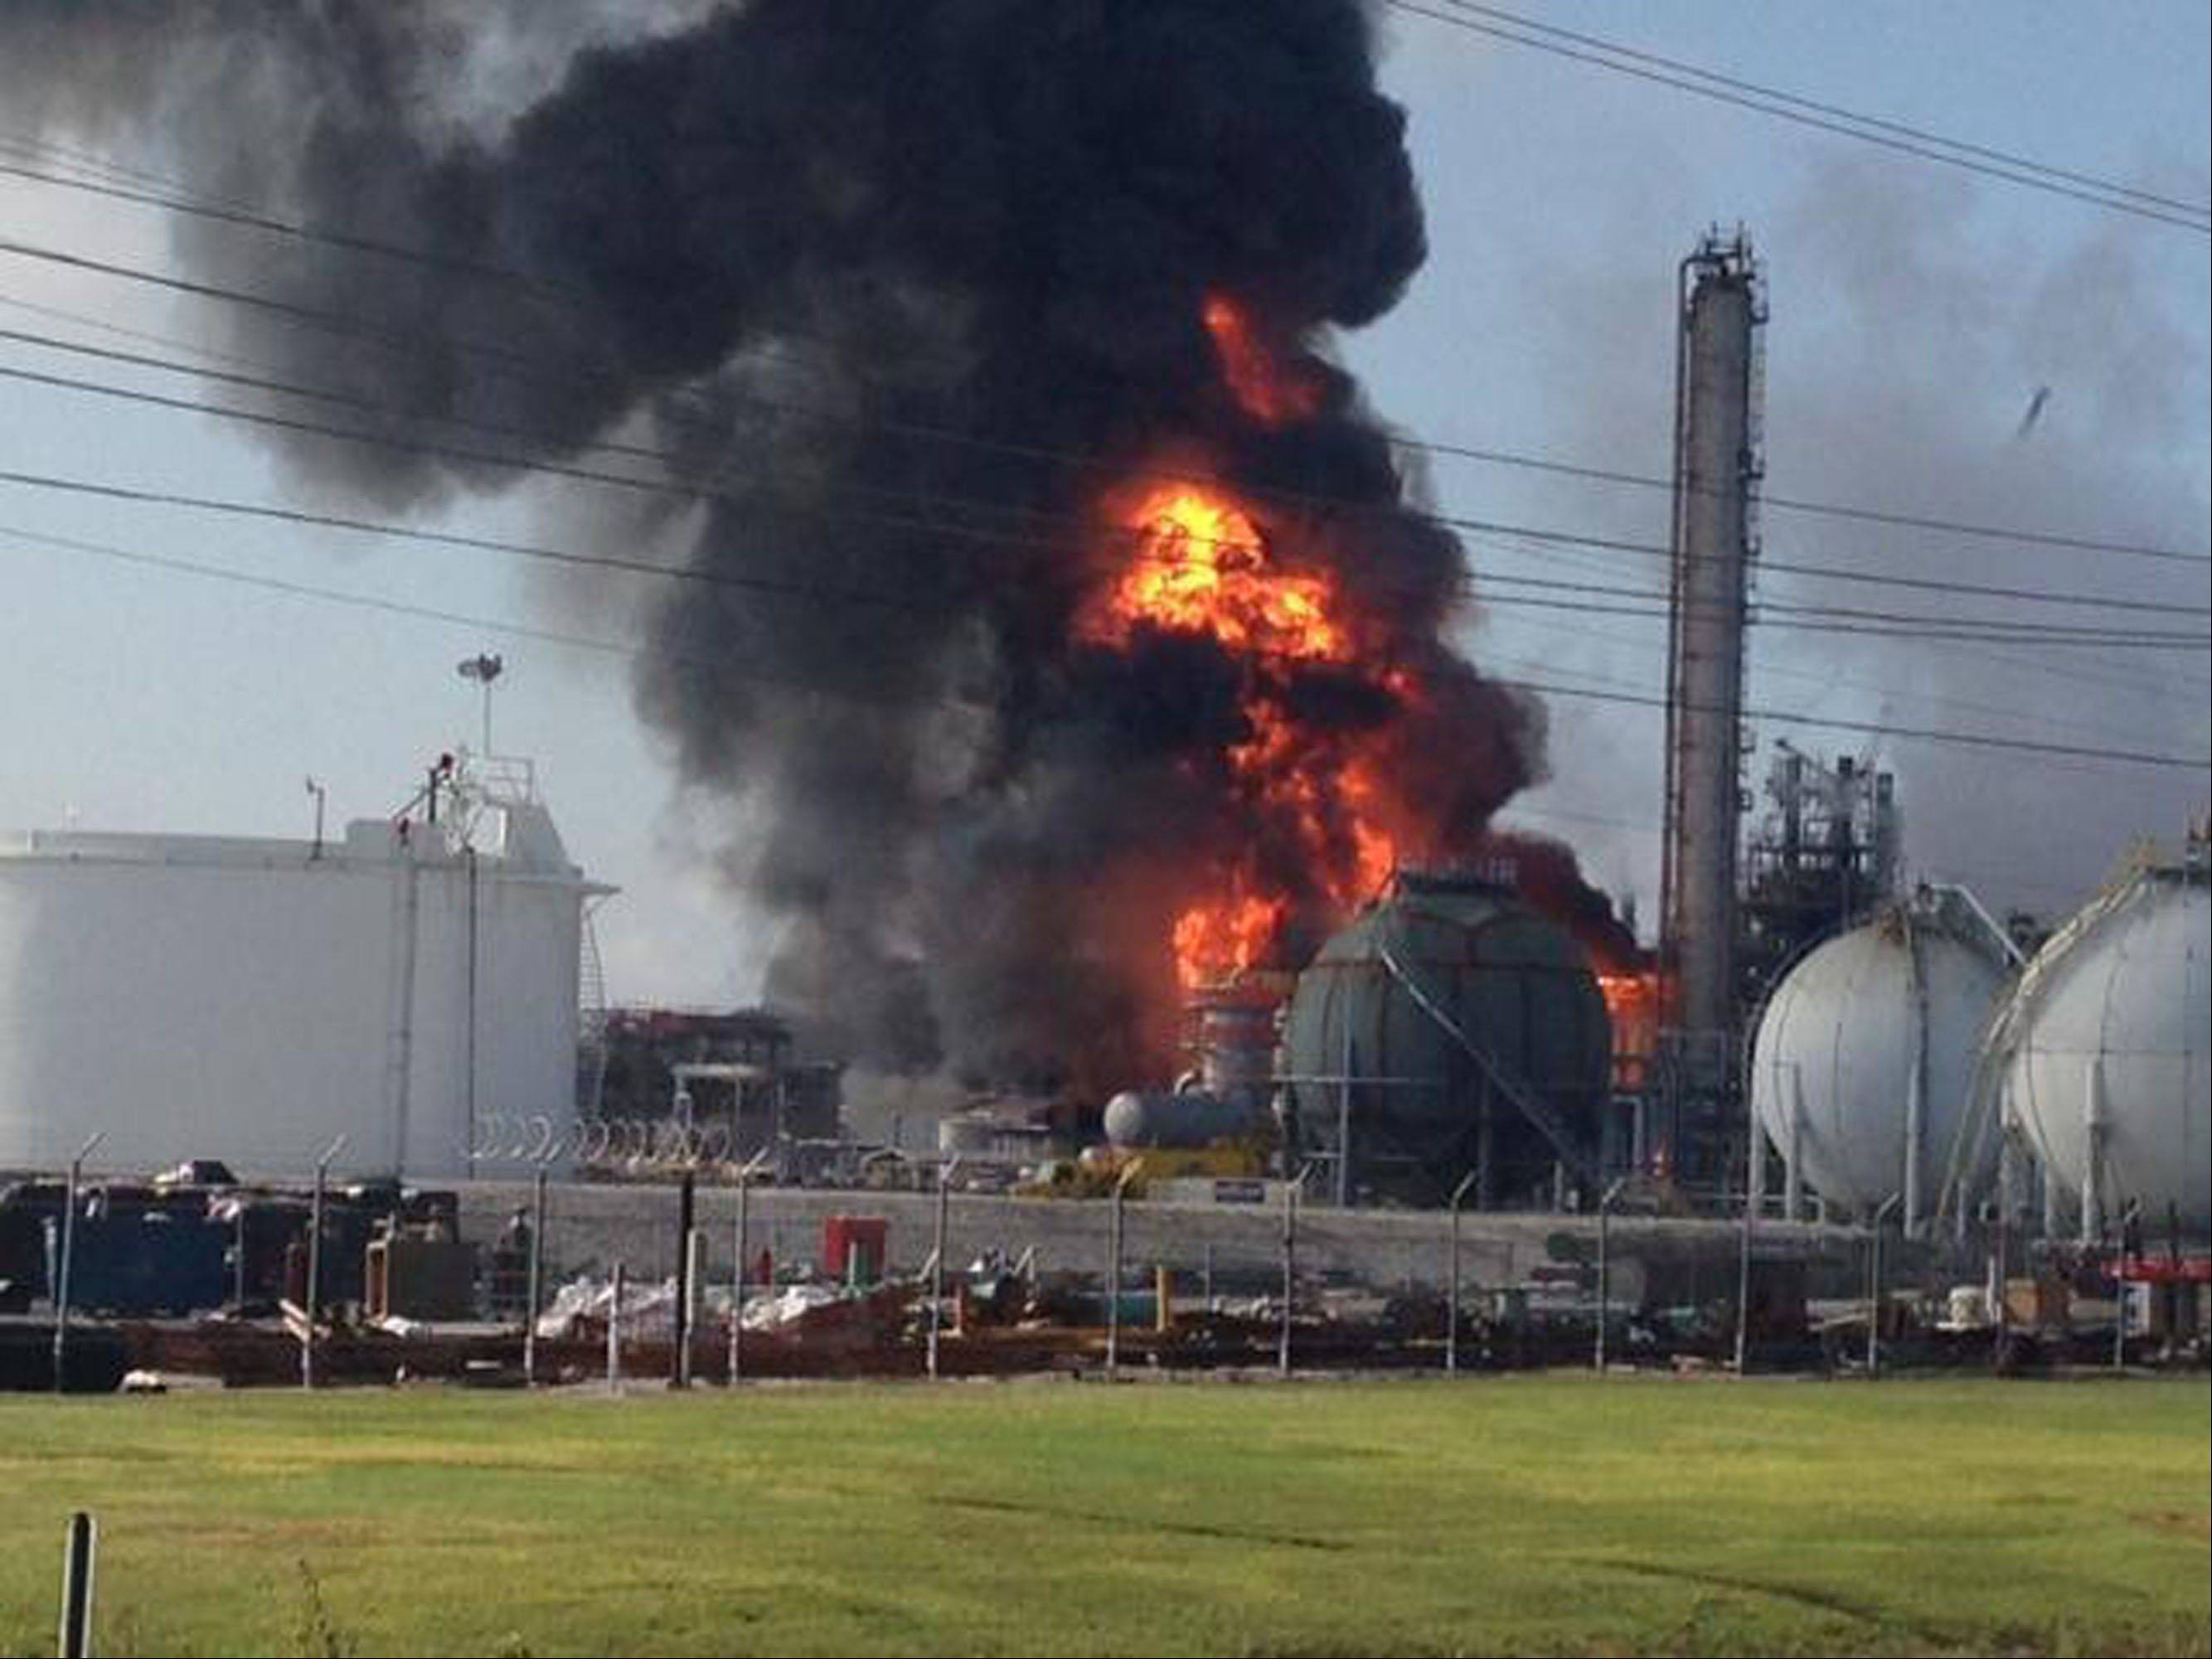 This photo provided by Ryan Meador shows an explosion at The Williams Companies Inc. plant in the Ascension Parish town of Geismar La., Thursday, June 13, 2013. The fire broke out Thursday morning at the plant, which the company's website says puts out about 1.3 billion pounds of ethylene and 90 million pounds of polymer grade propylene a year.